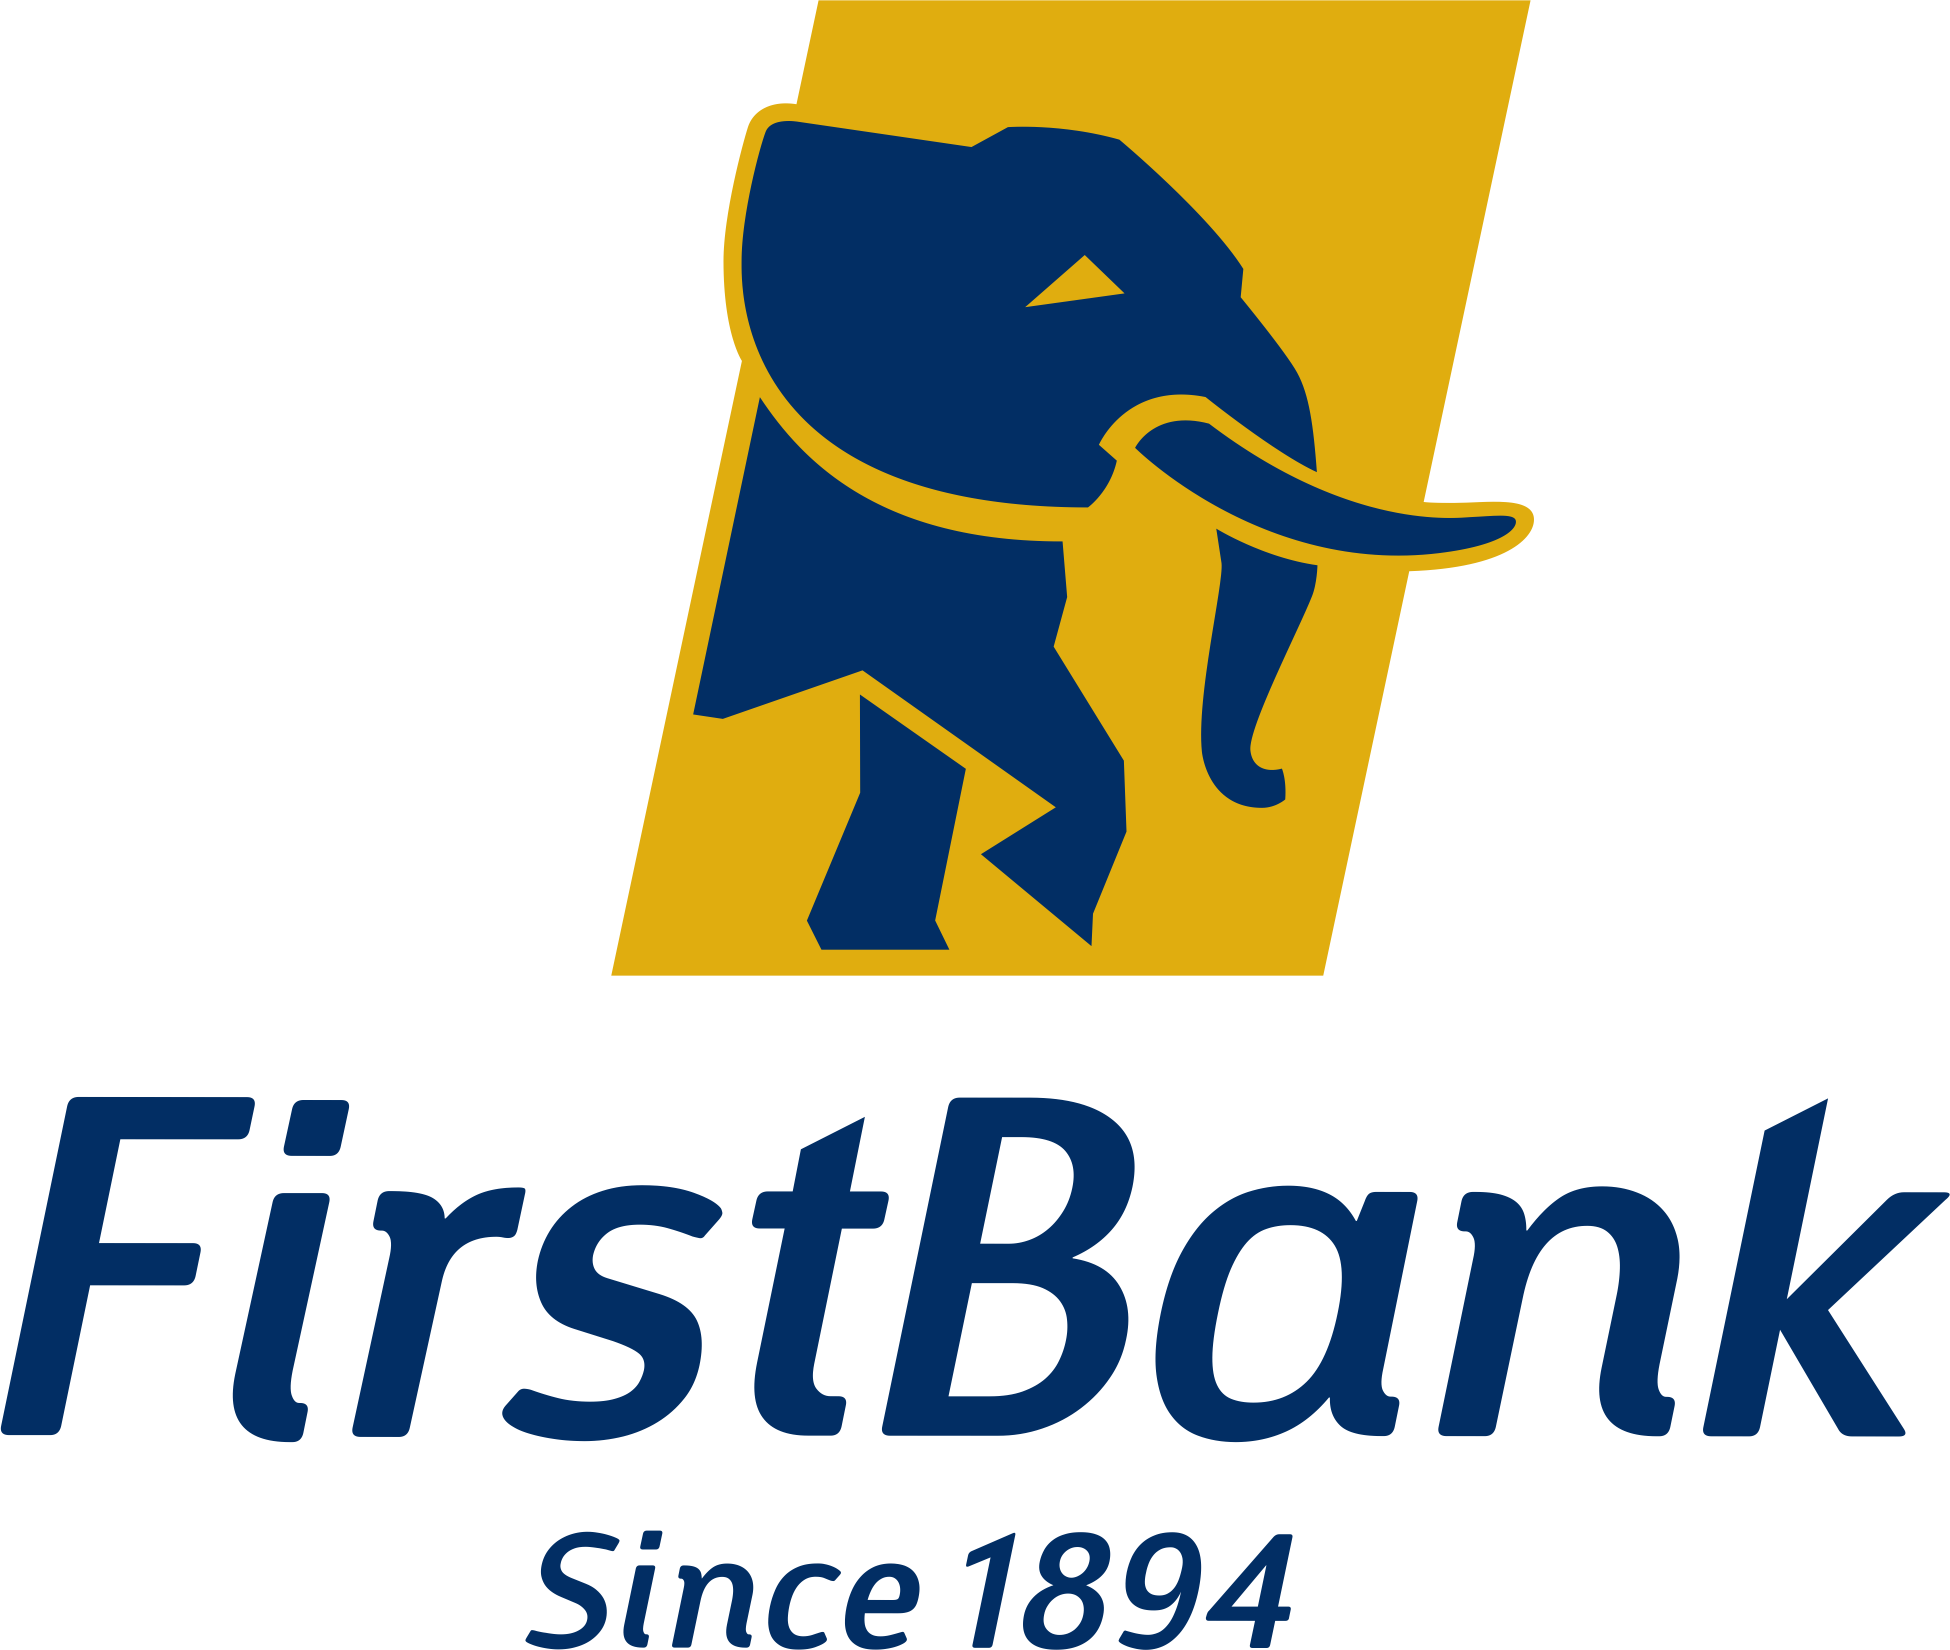 FIRSTBANK CLINCHES ANOTHER INTERNATIONAL RECOGNITION